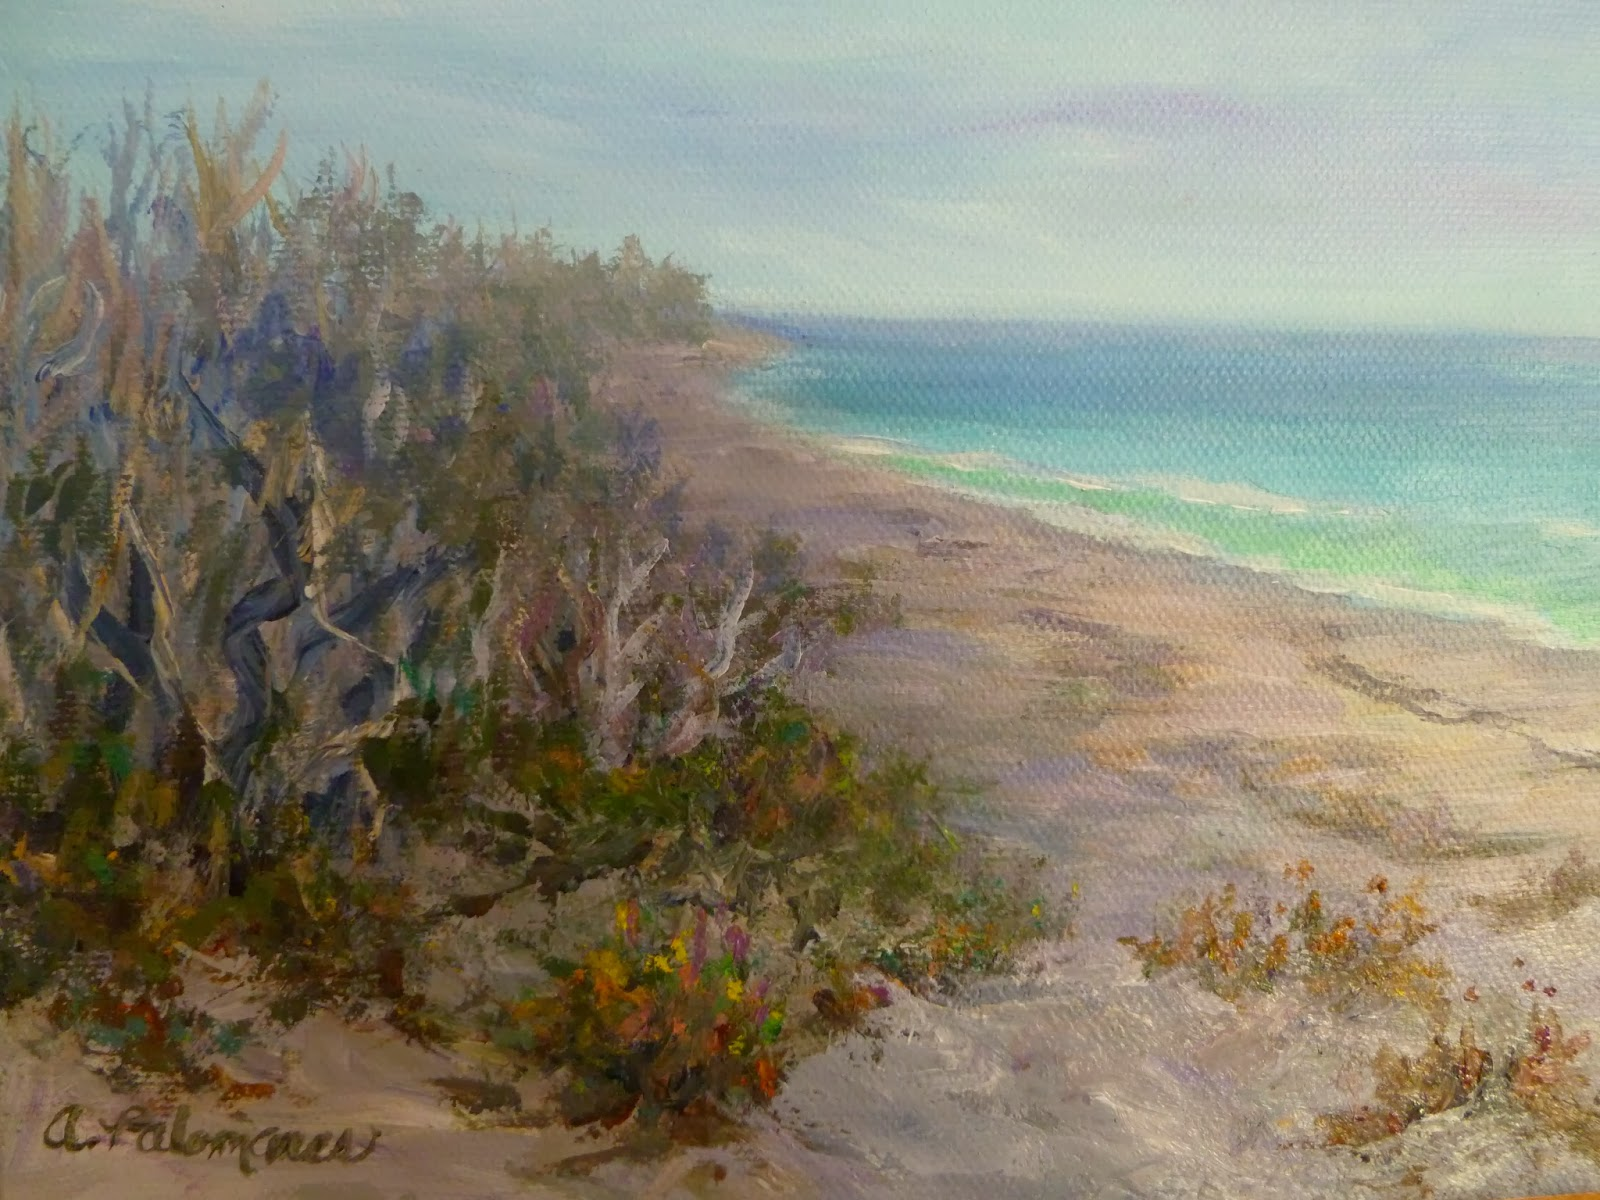 Painting of beach at MacArthur State Park